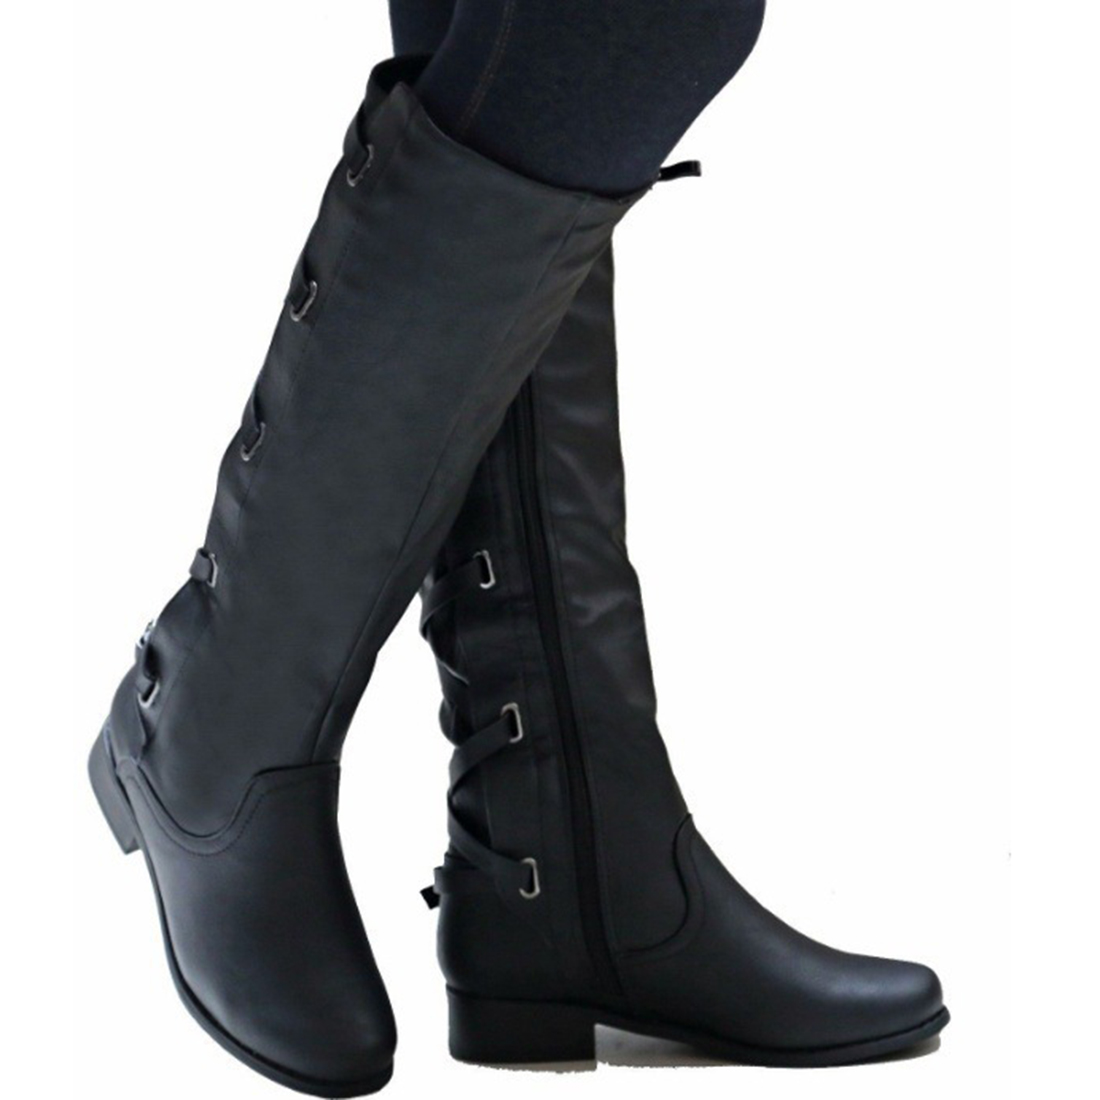 b26304e70a82 Big Size 35 43 Knee High Women Boots Zipper Motorcycle Boots Low Heels  Buckle Cross Tie Platform Shoes Winter Riding Boots-in Knee-High Boots from  Shoes on ...